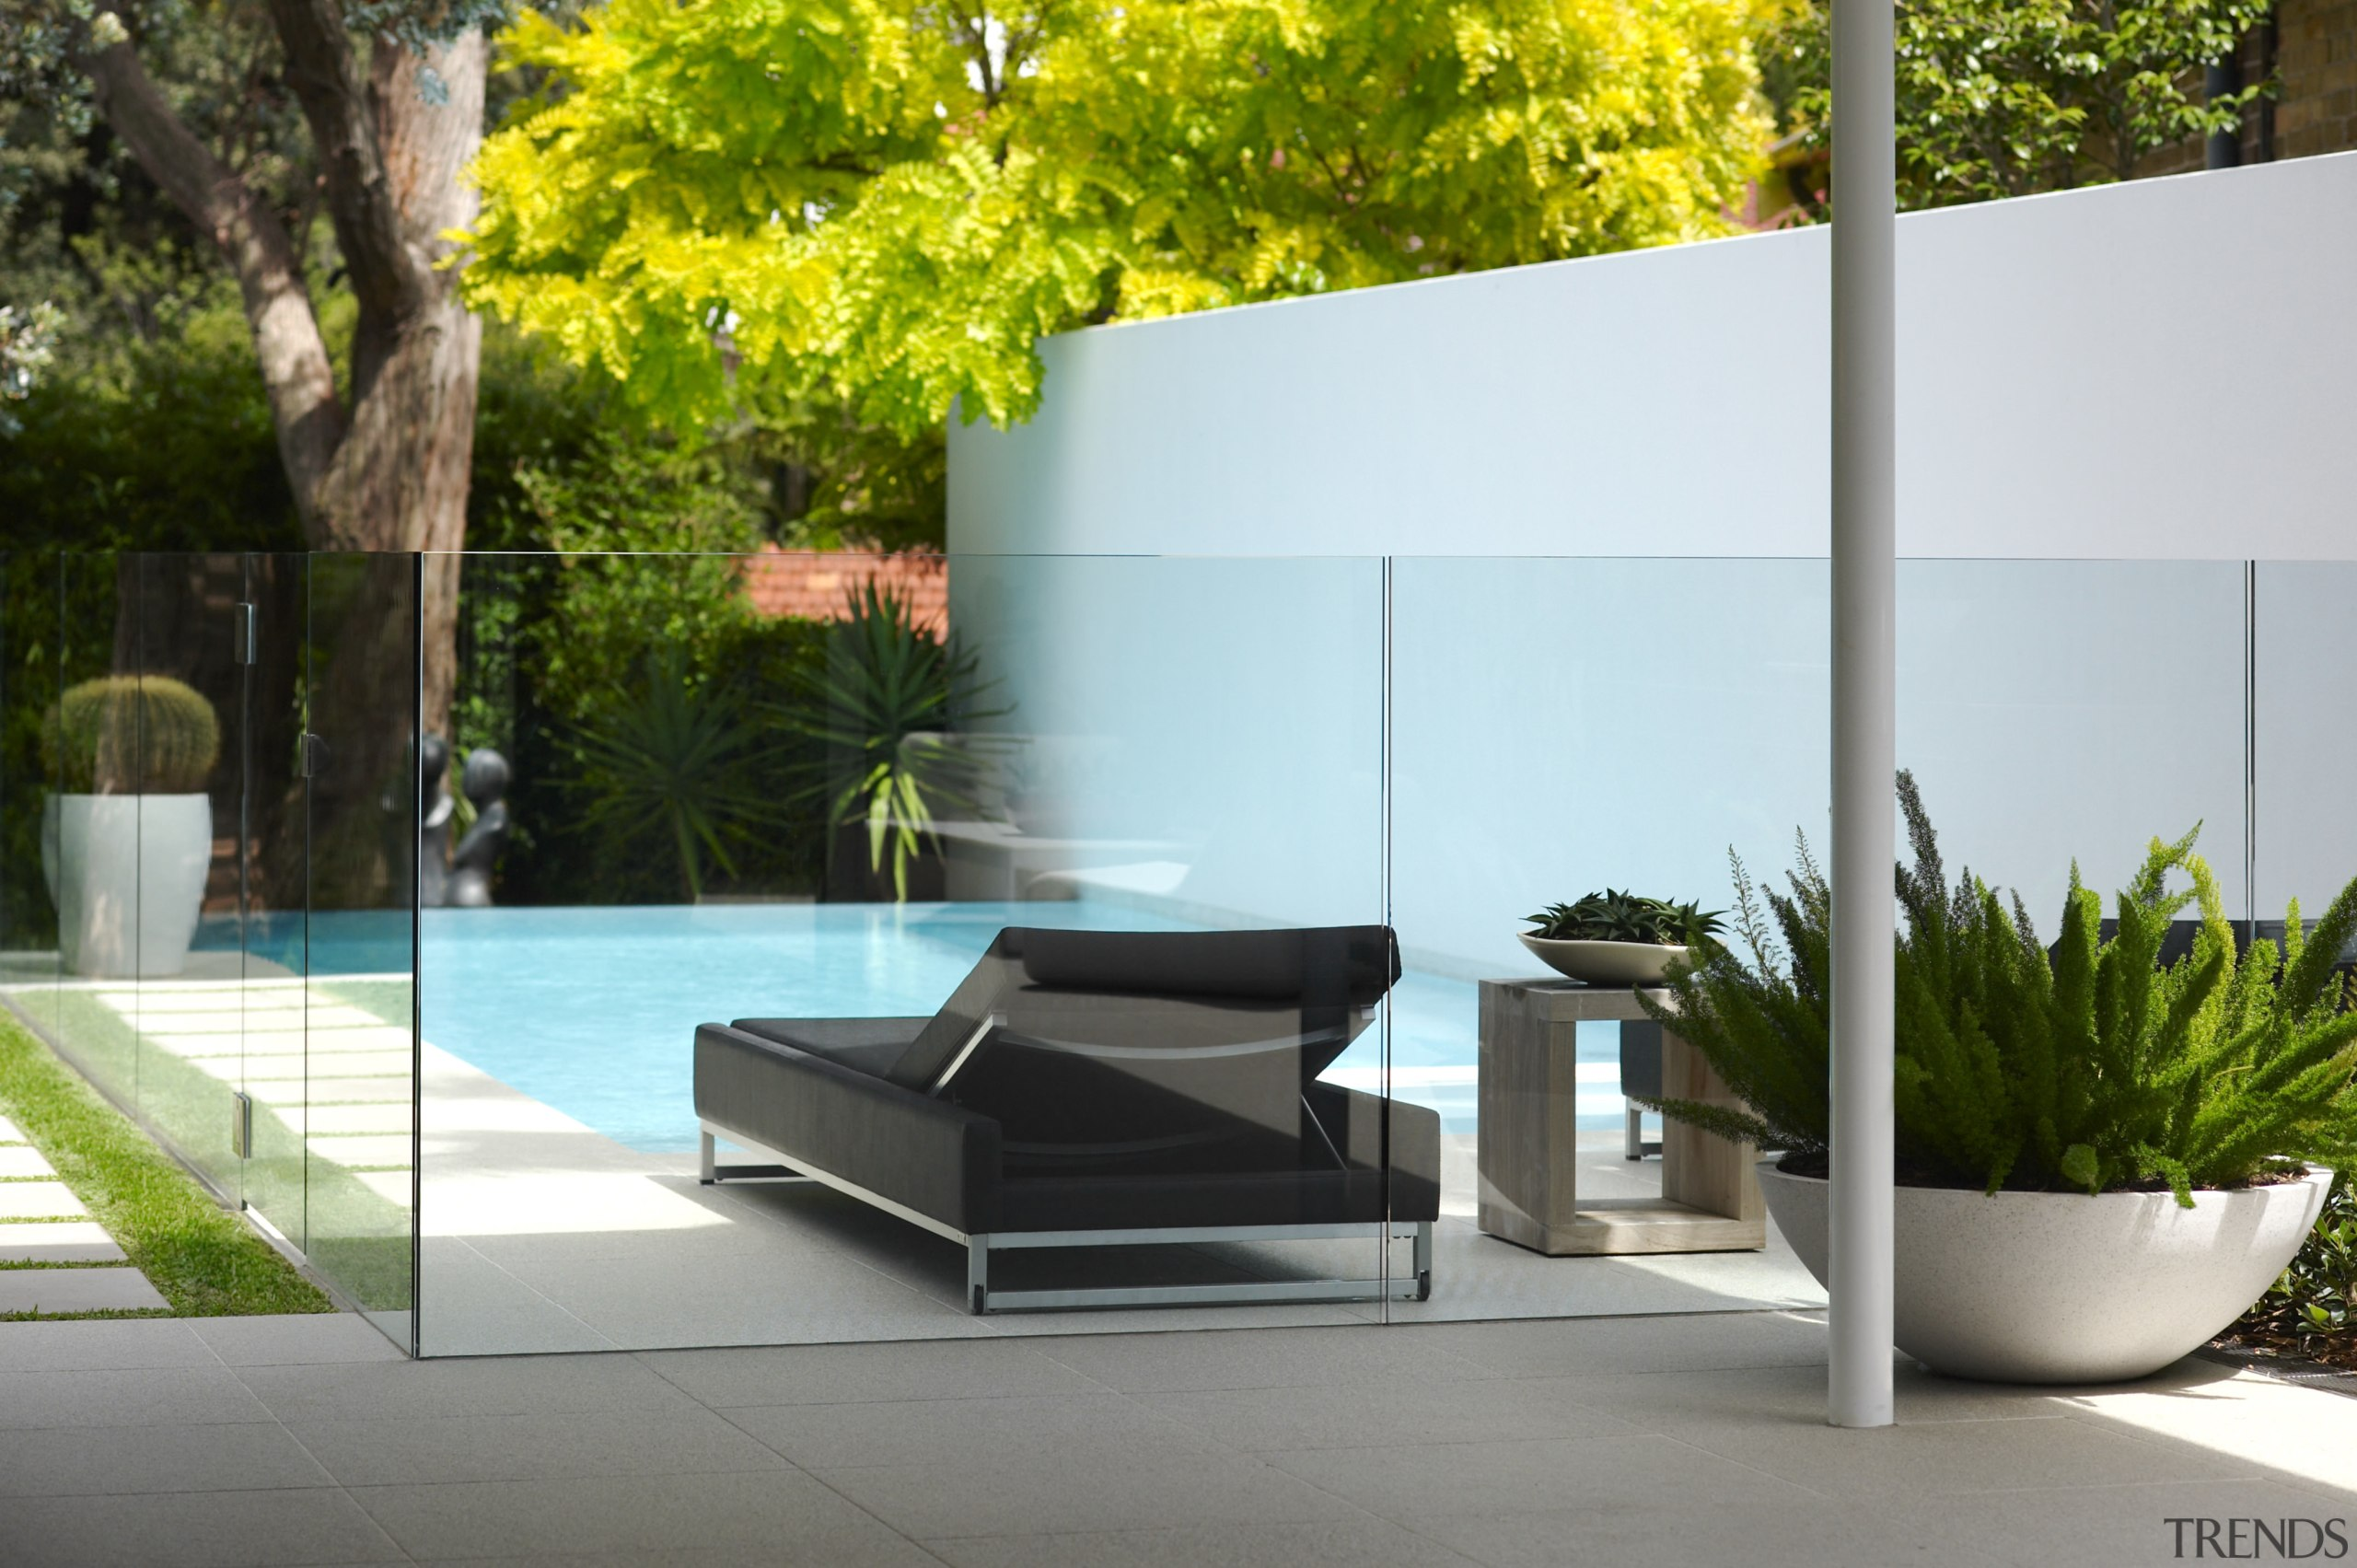 A glass pool fence in this garden ensures architecture, backyard, courtyard, flowerpot, furniture, glass, grass, home, house, interior design, outdoor furniture, plant, property, table, wall, gray, white